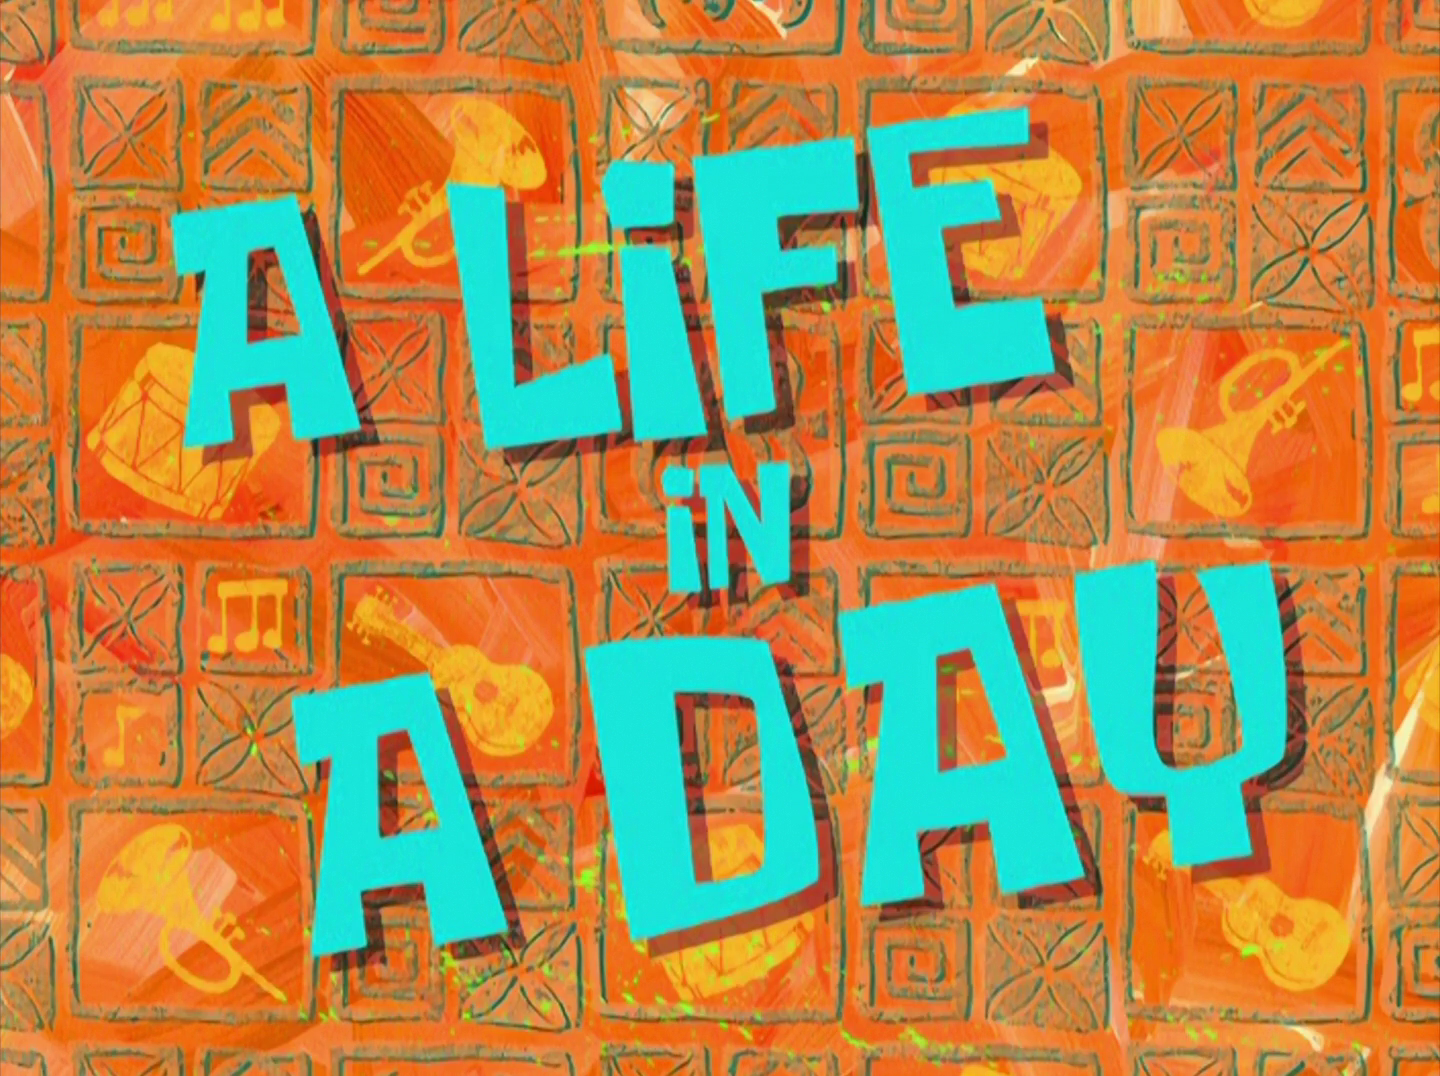 A Life in a Day